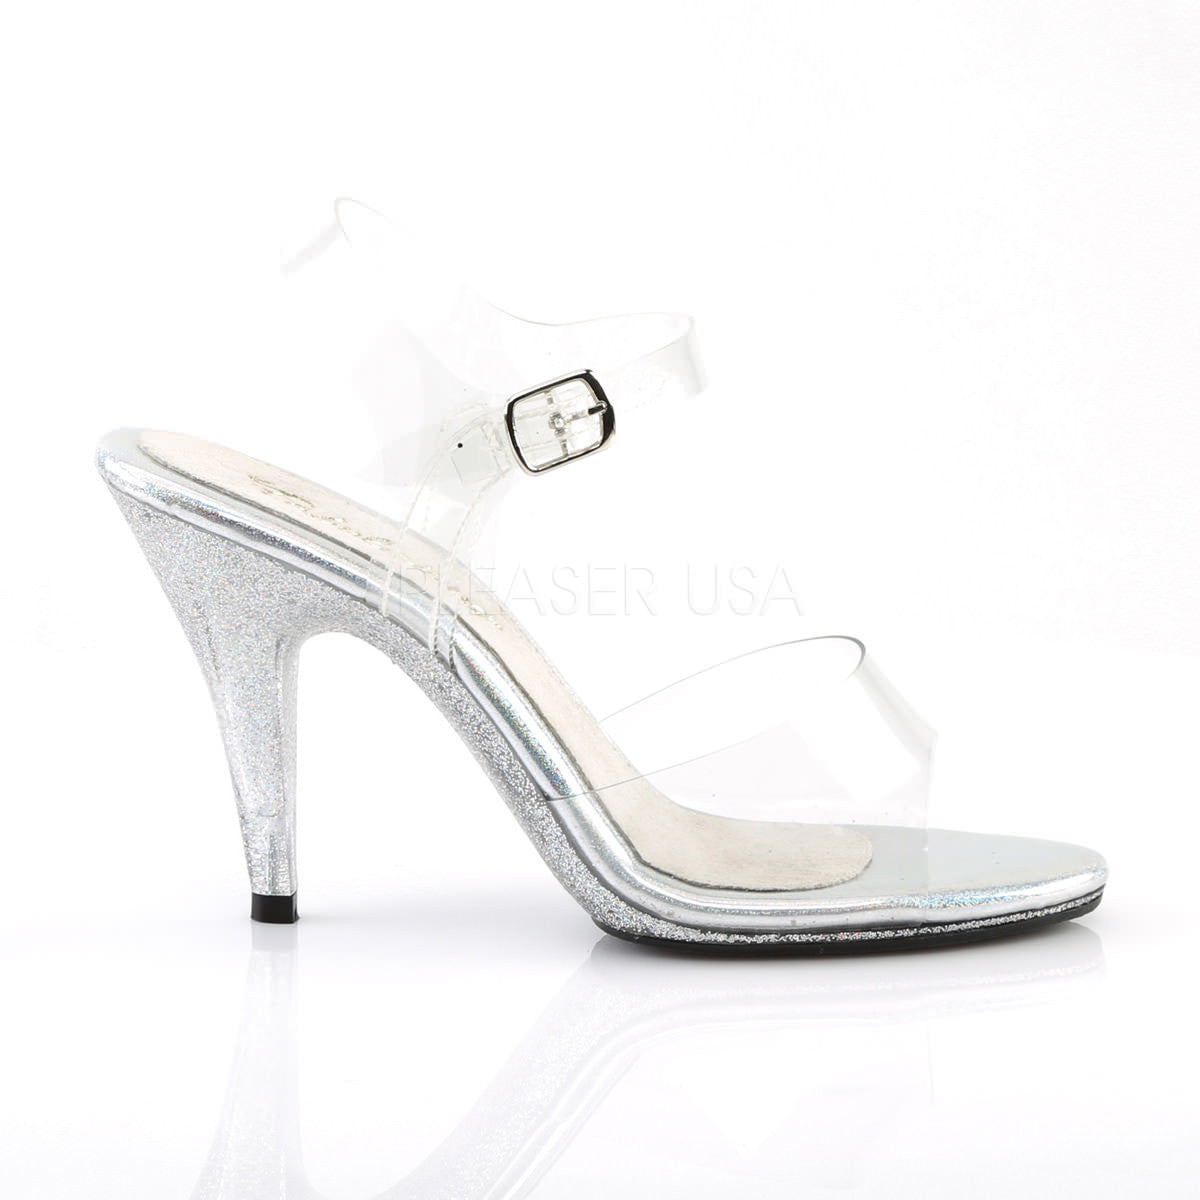 2d4114ec9d4 Fabulicious CARESS-408MG Clear Ankle Strap Sandals With Glitter Bottom.  Previous